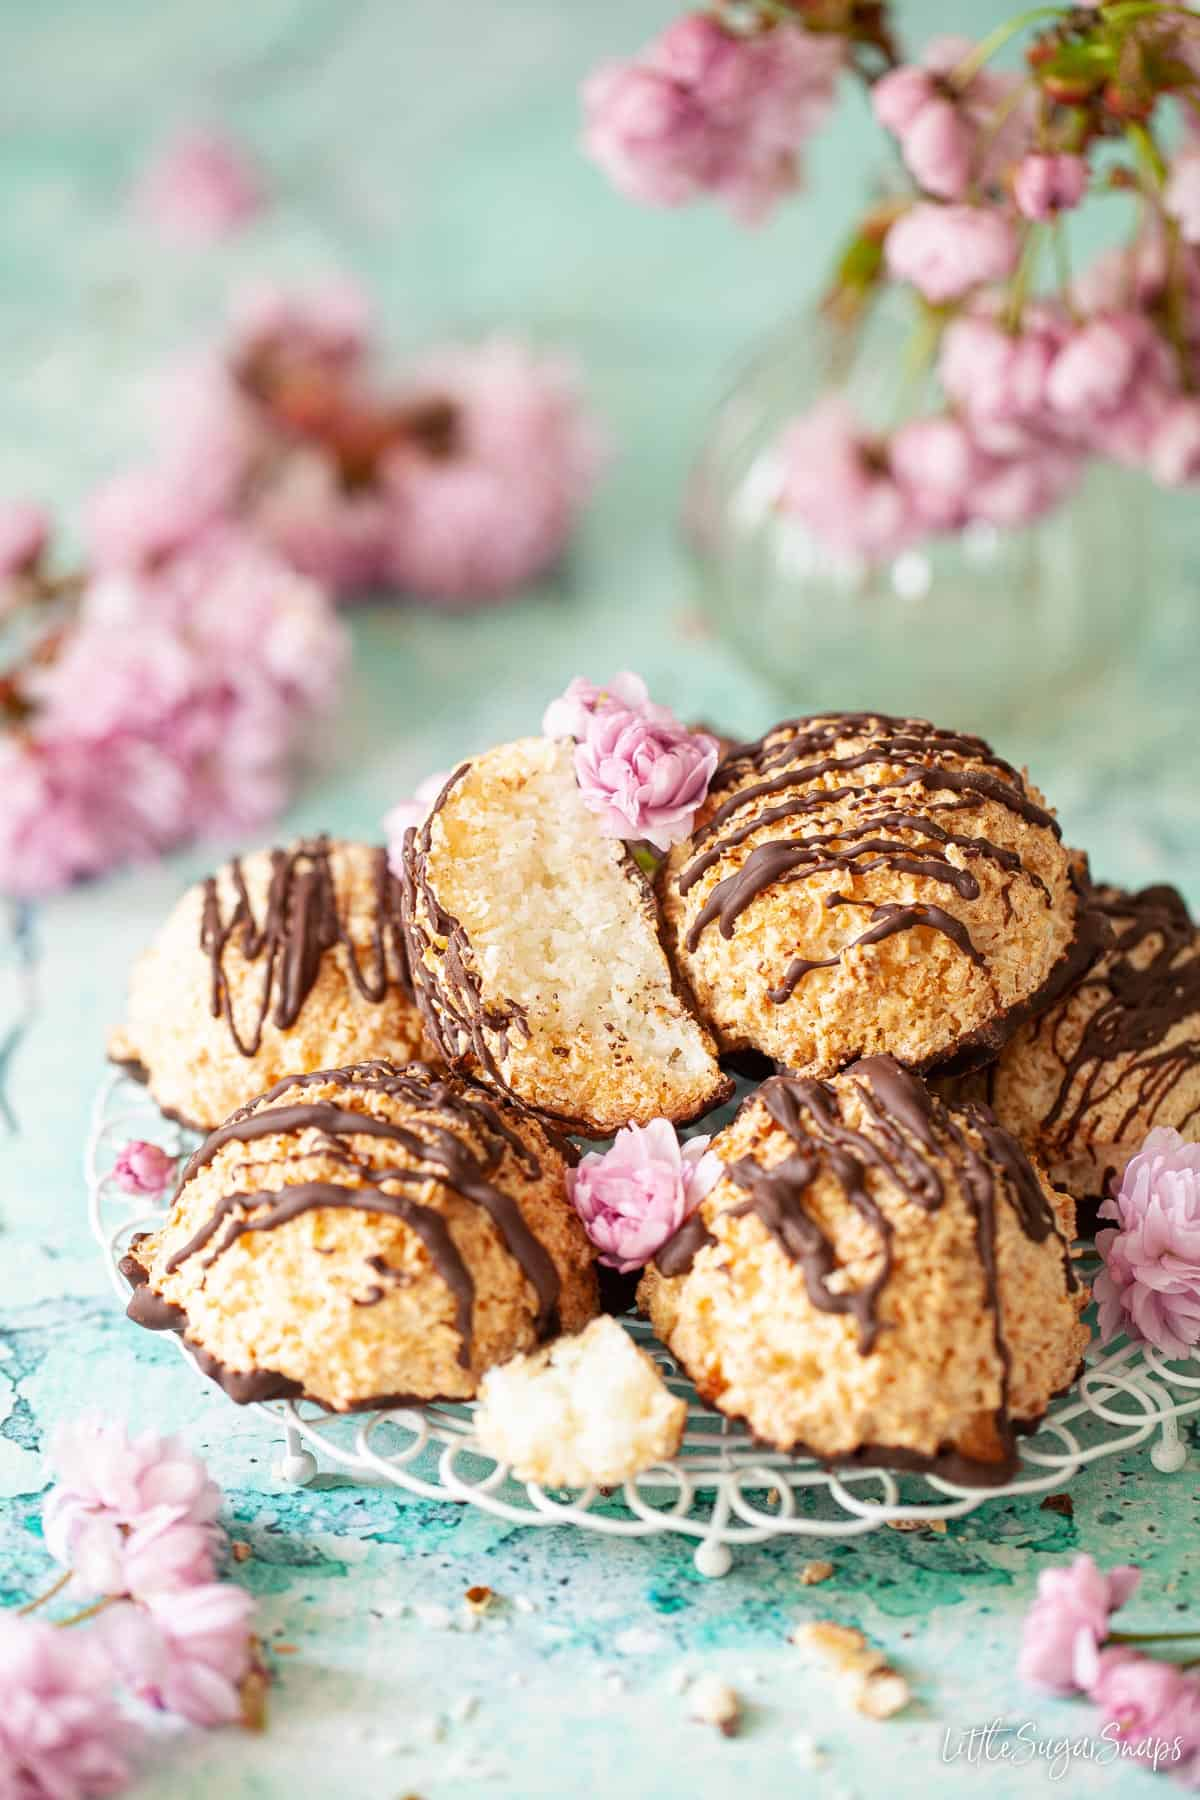 A plate of coconut macaroons with pink flowers surrounding it